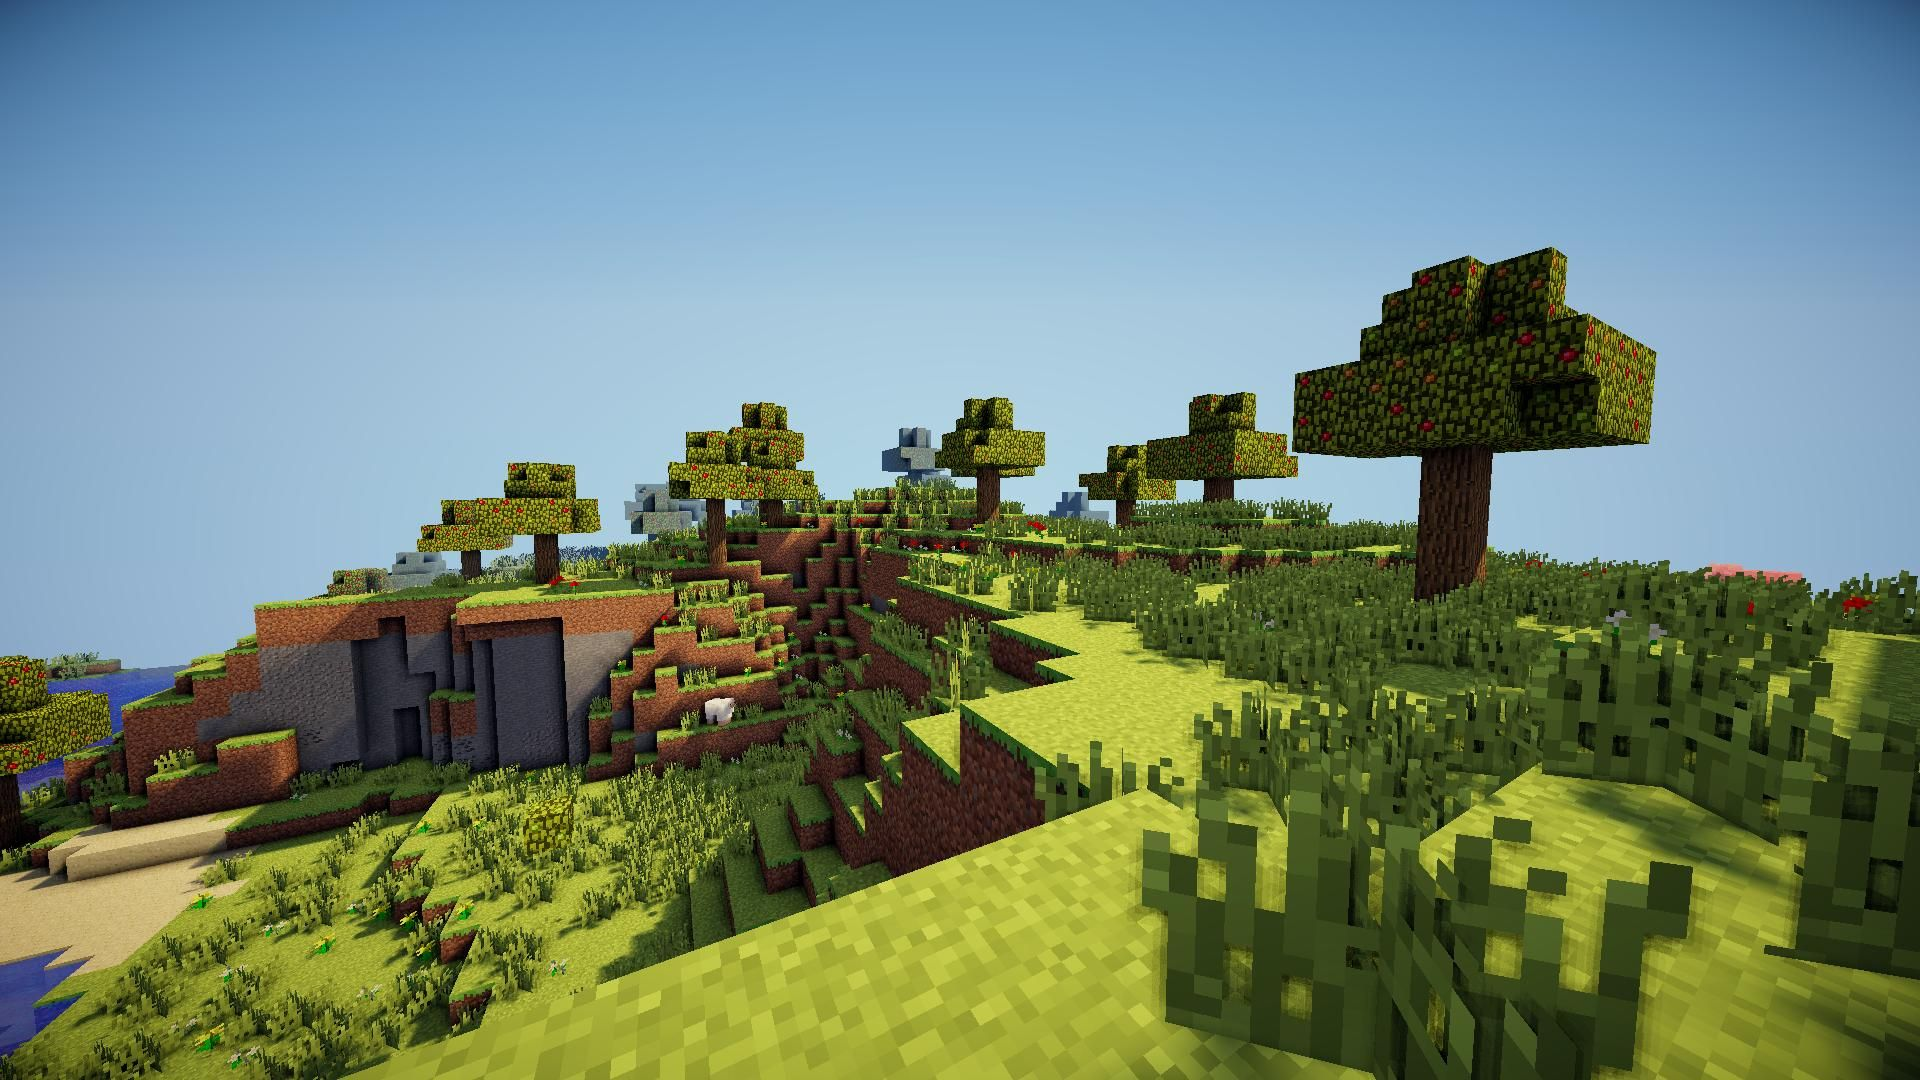 Must see Wallpaper Minecraft Plain - 07198ea69437532bd20f6e104ebdf2a5  Graphic_789146.jpg